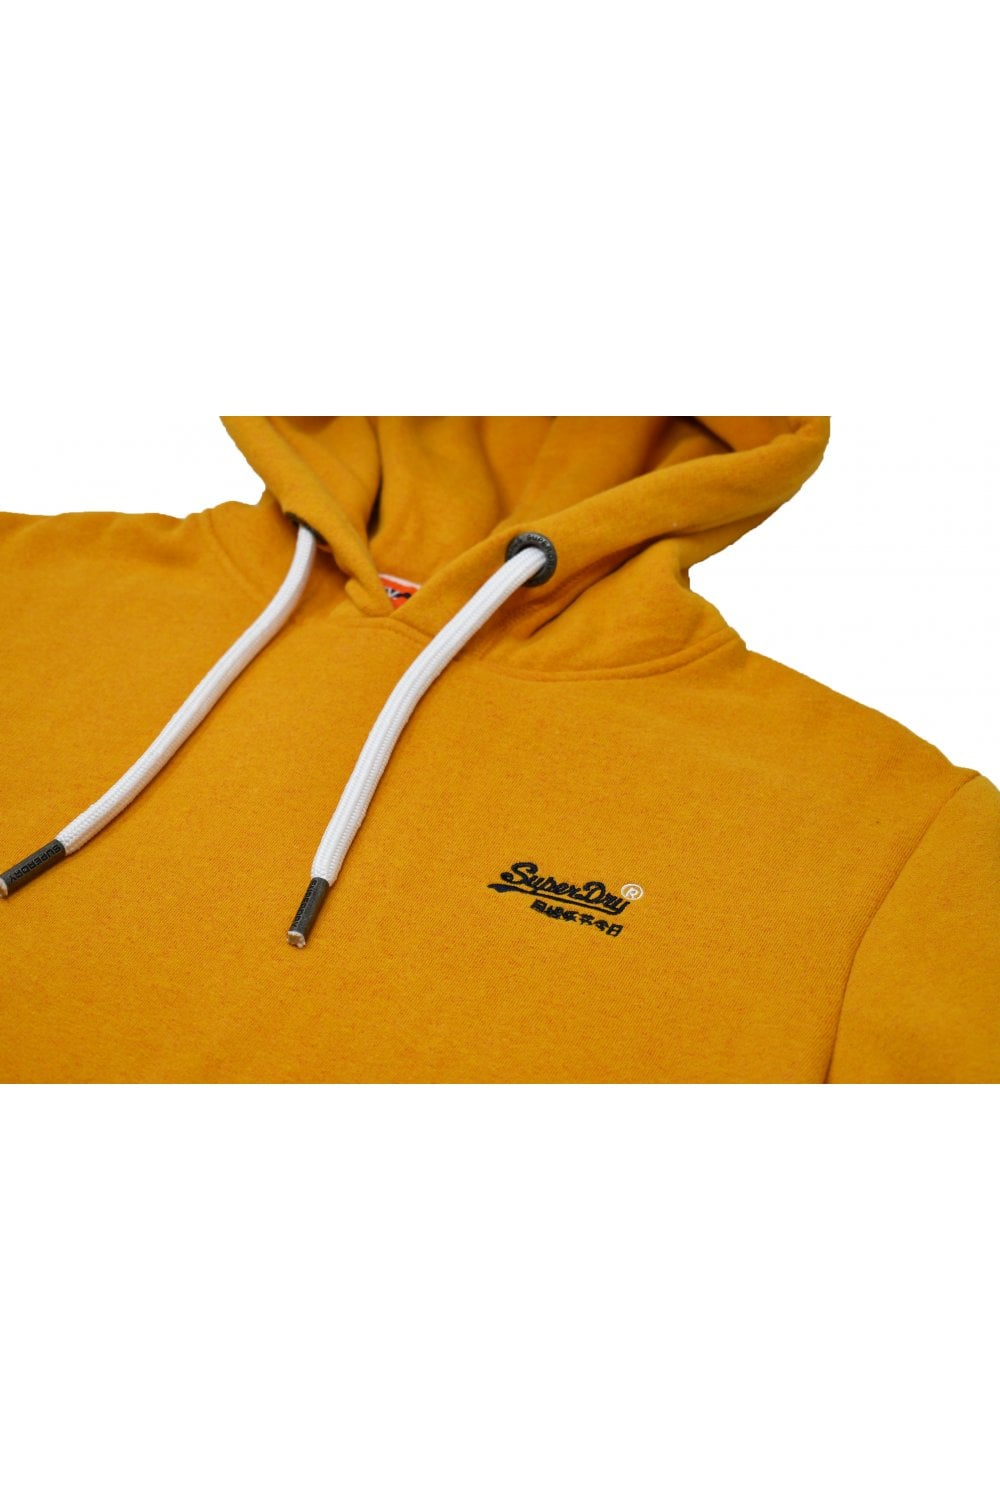 separation shoes 59b1a 2fbf0 Superdry Orange Label Pullover Hoody (Warm Gold Grit)